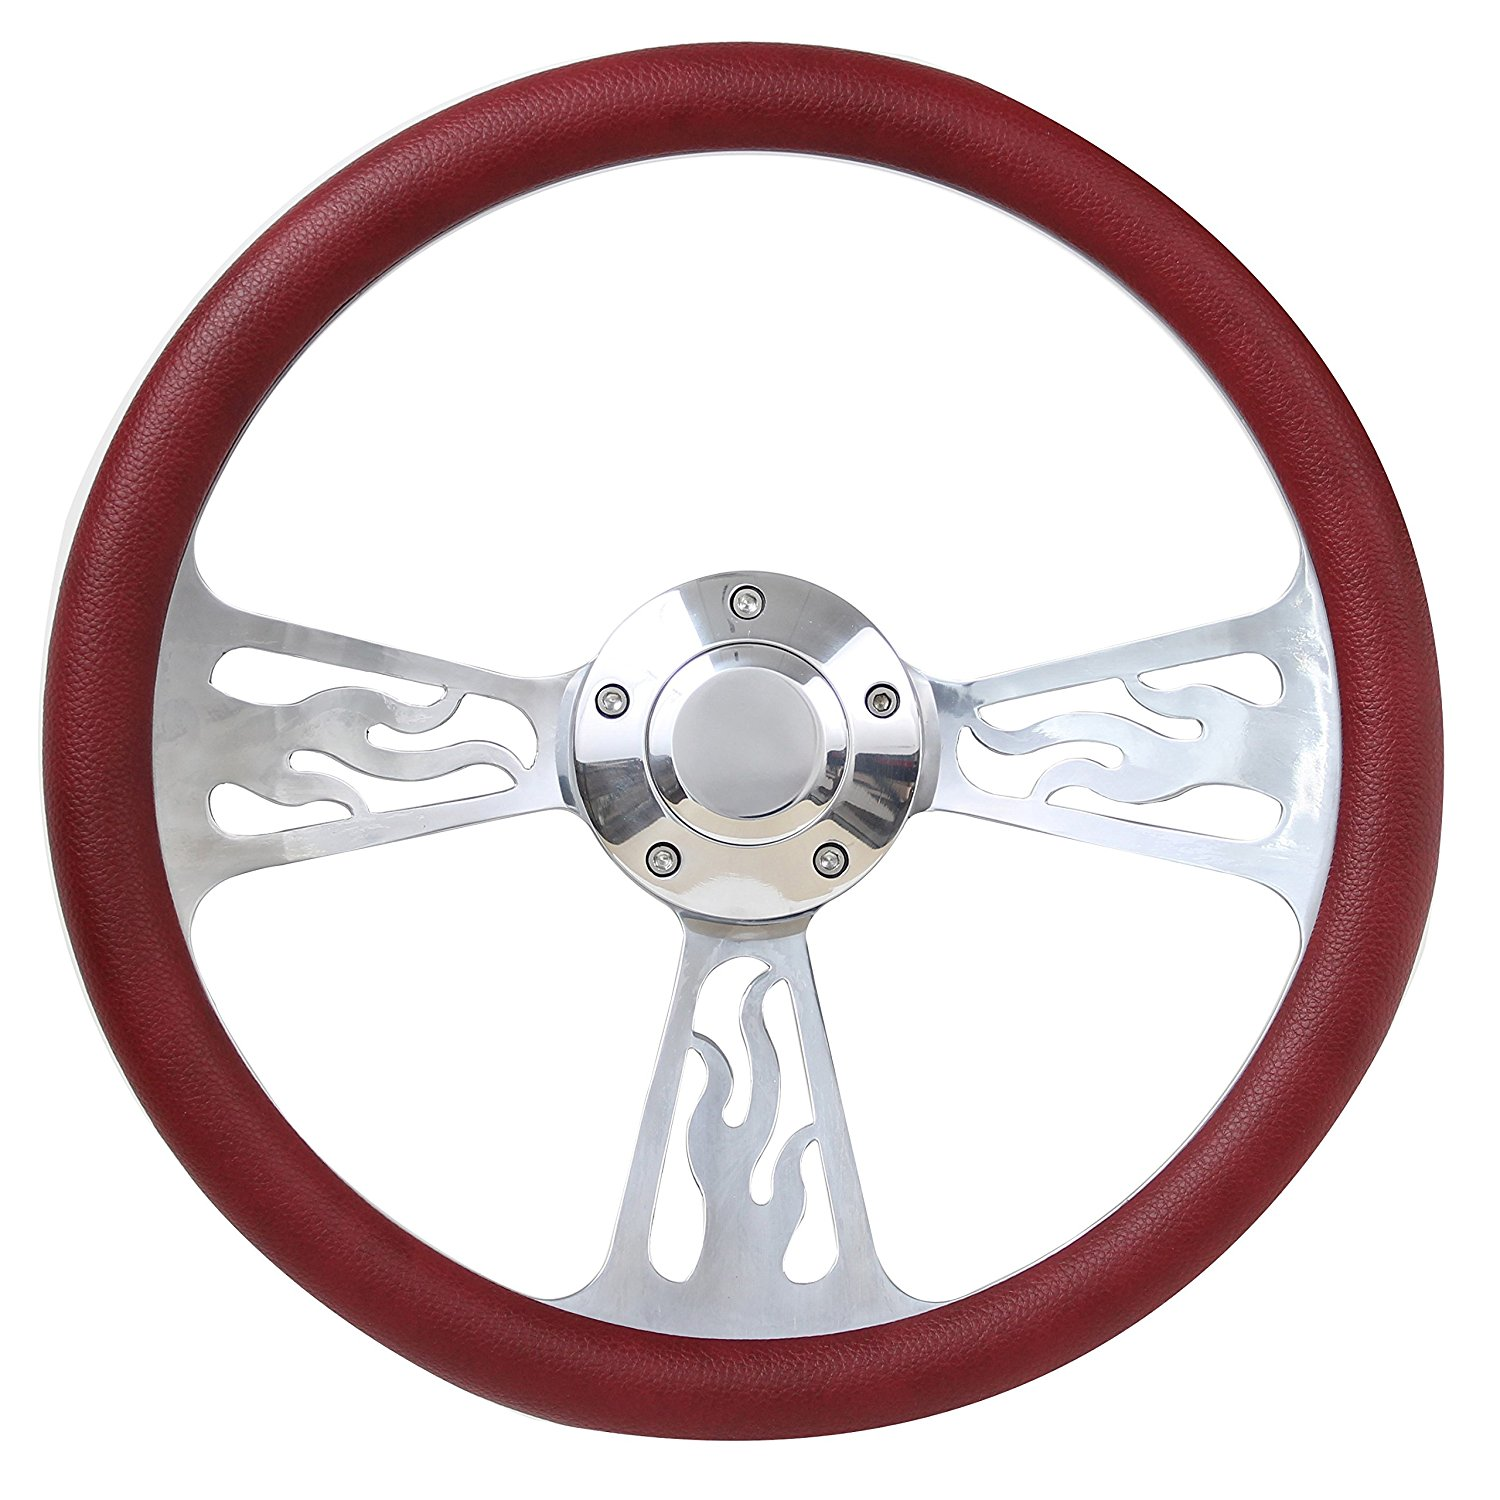 55-57 Ford Thunderbird Flame Steering Wheel 14 Inch Aluminum with Tan Wrap